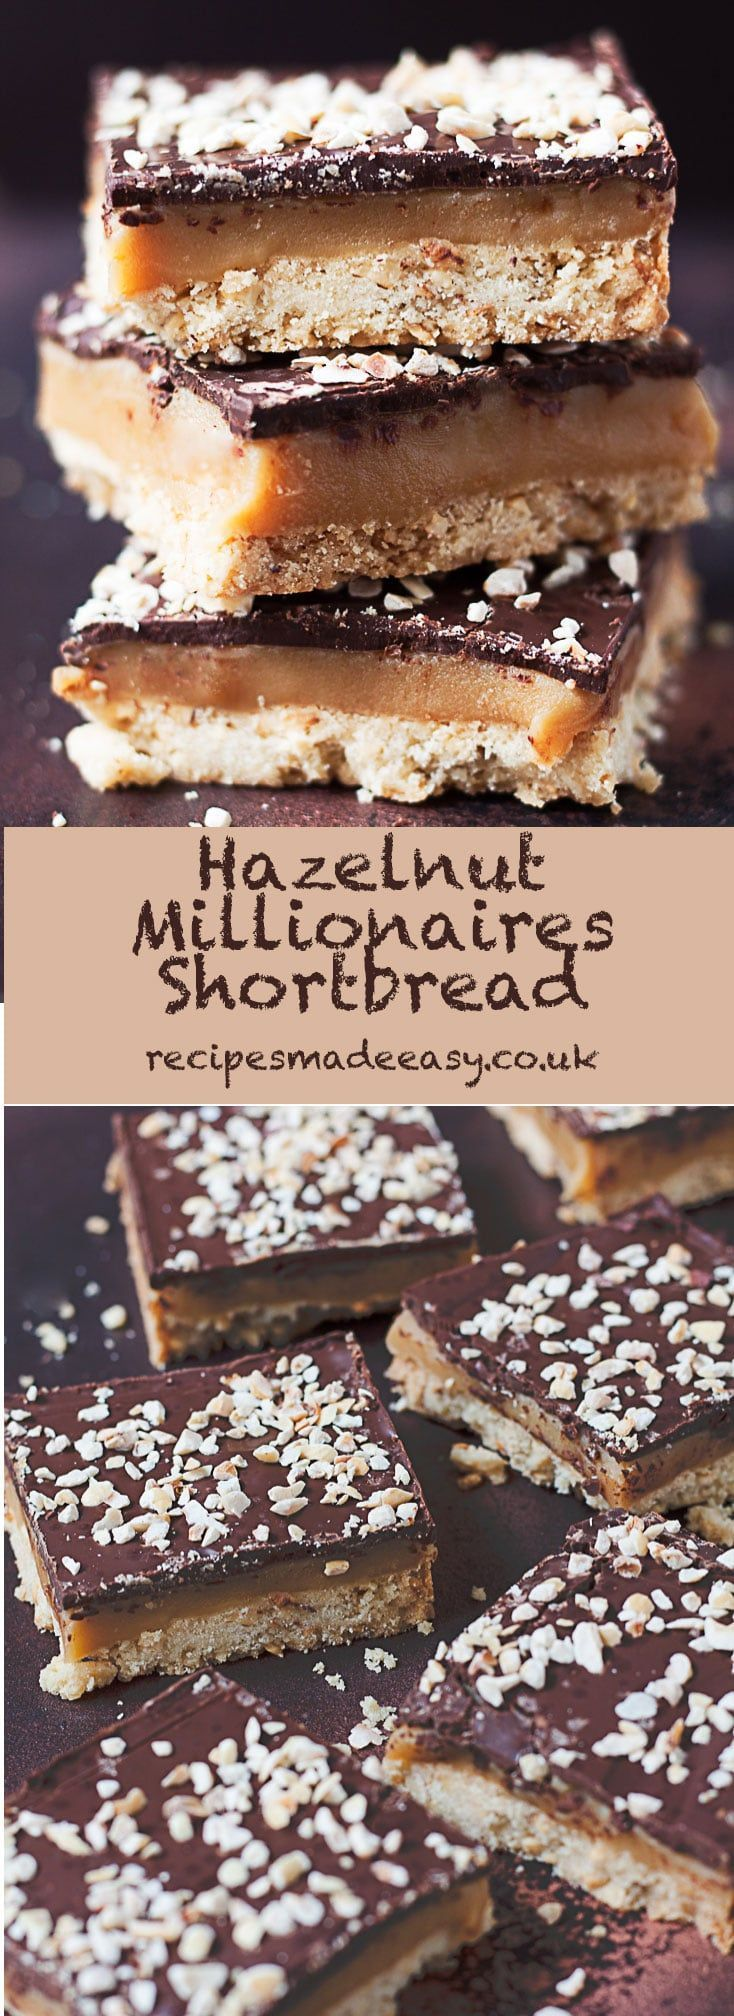 This Hazelnut Millionaires Shortbread has a delicious hazelnut shortbread base covered with a caramel filling enhanced by a good splash of rum and is topped with a layer of chocolate and a sprinkling of hazelnuts. A delicious indulgent caramelly treat fo